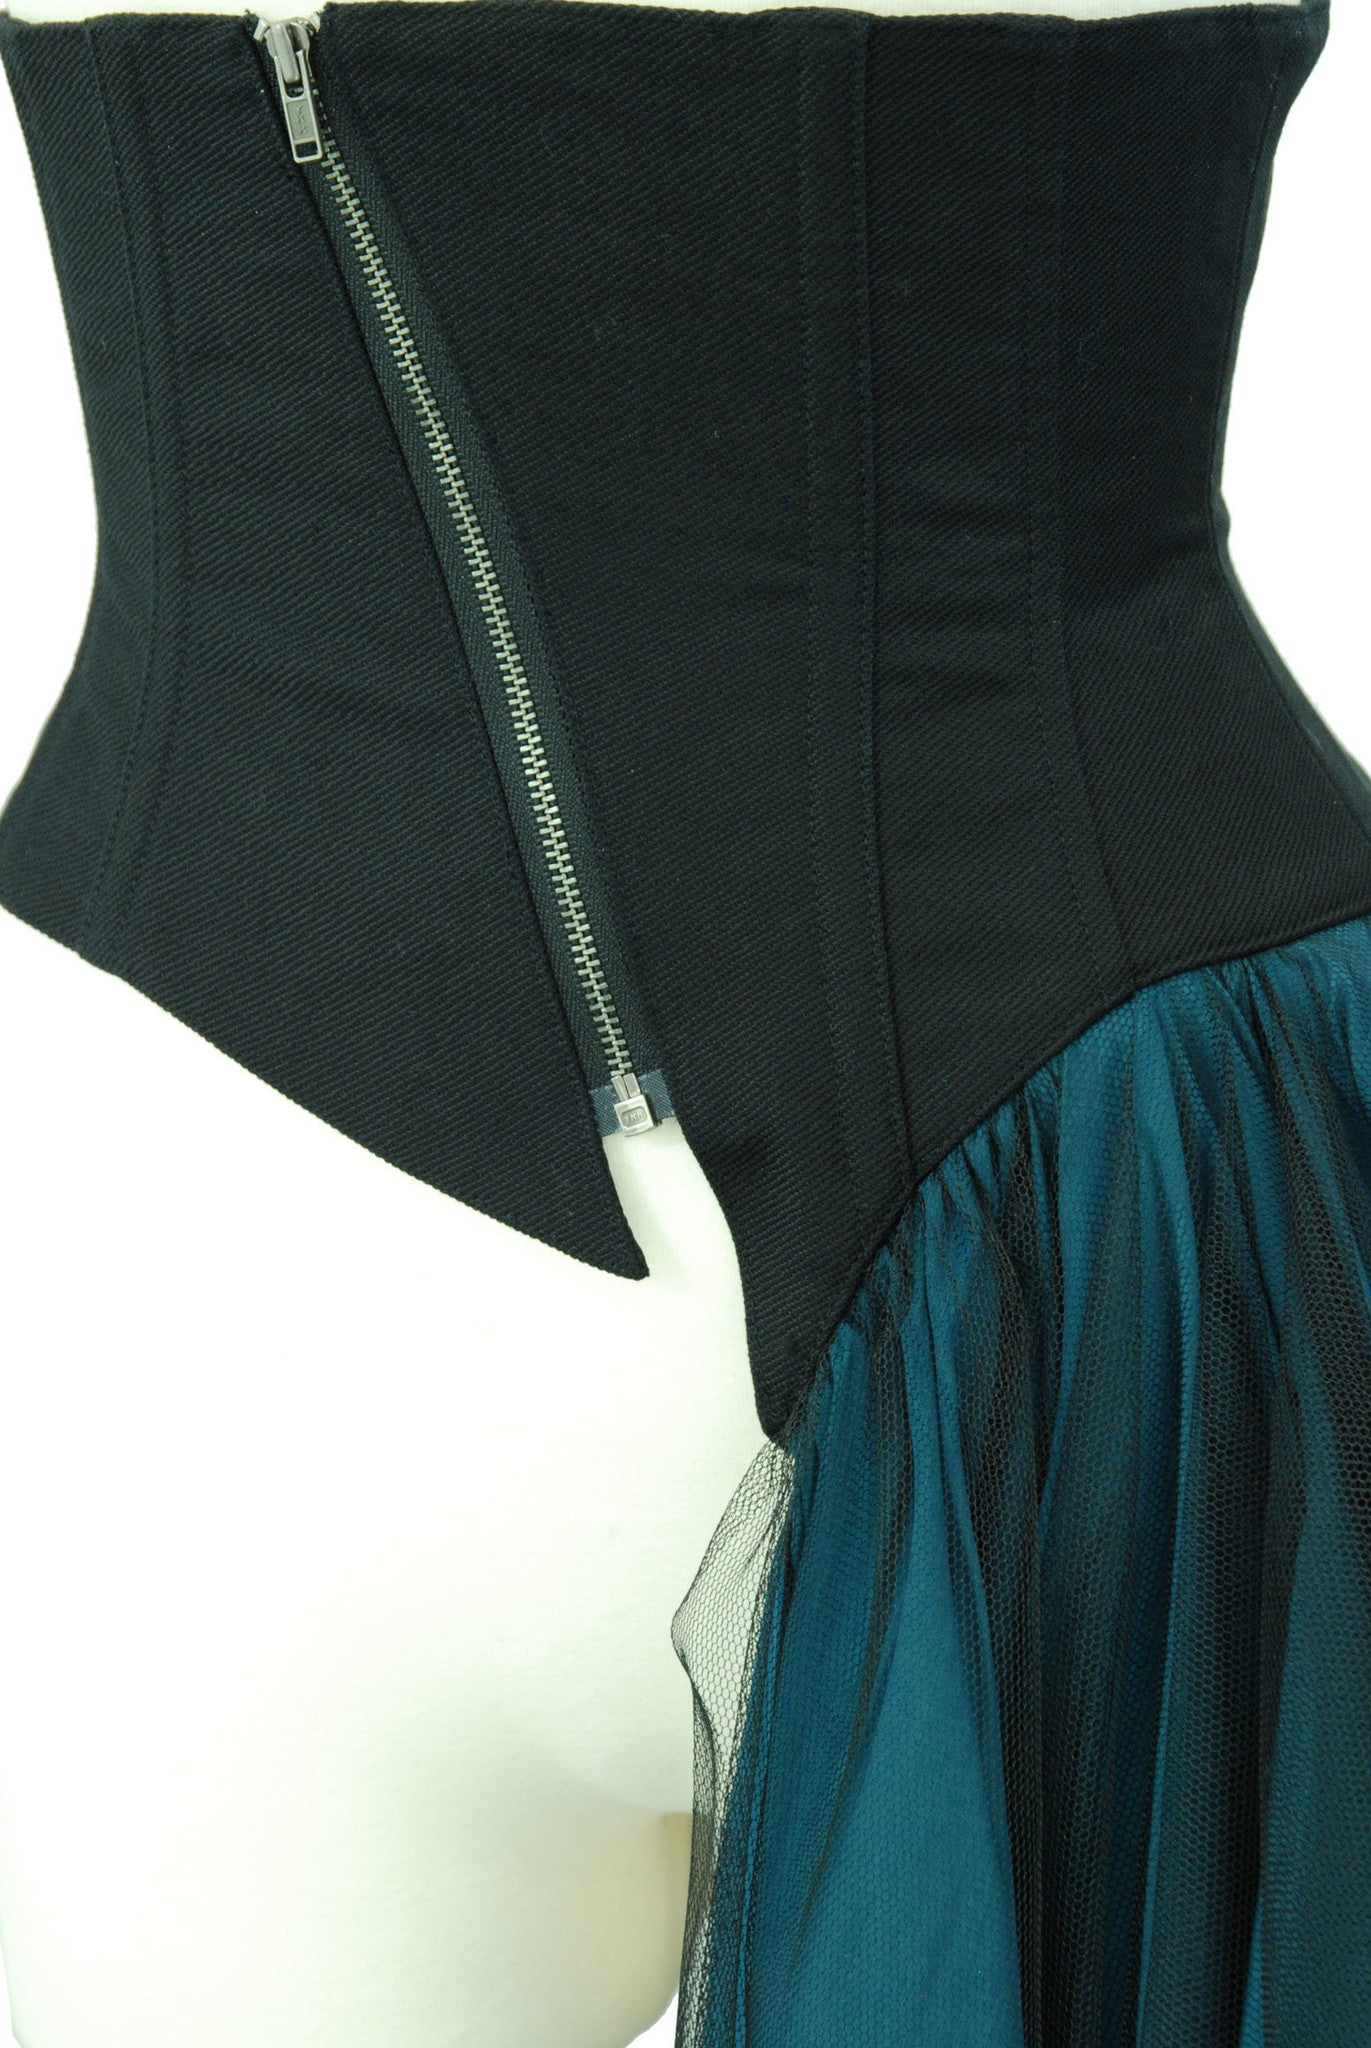 Sheglit Liberated Tulle Corset(black&blue)